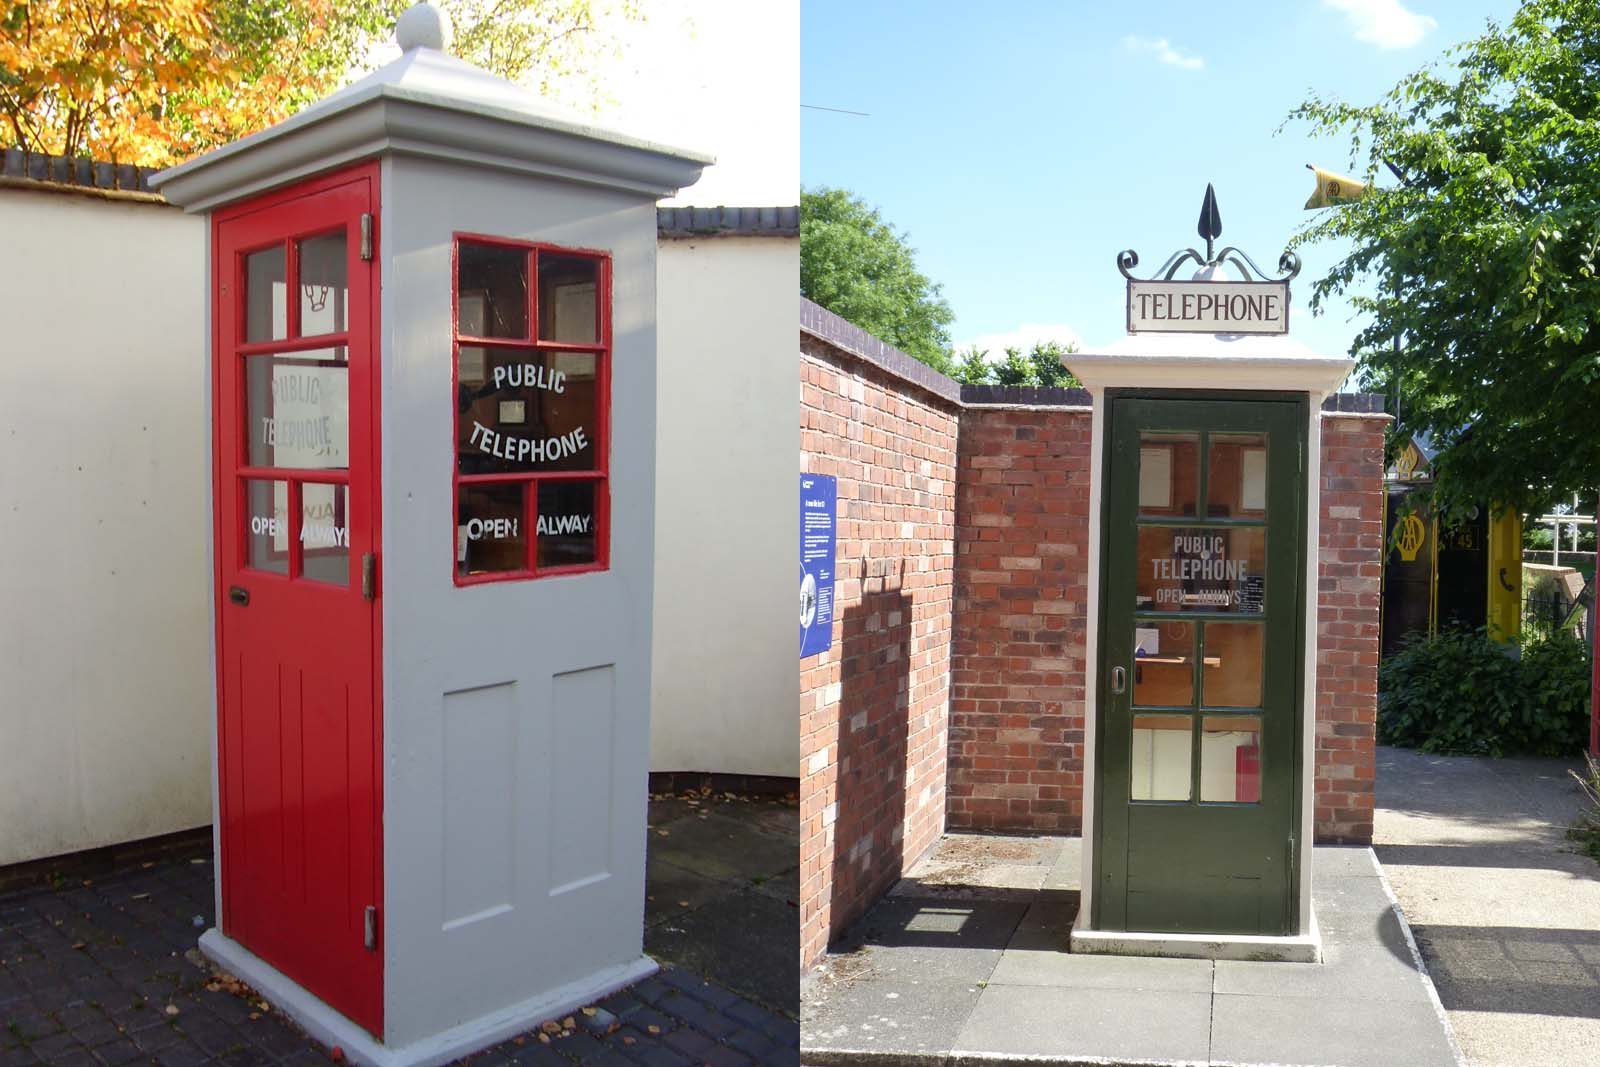 two photographs shjowing the same type of phone box but in redand white and green and white